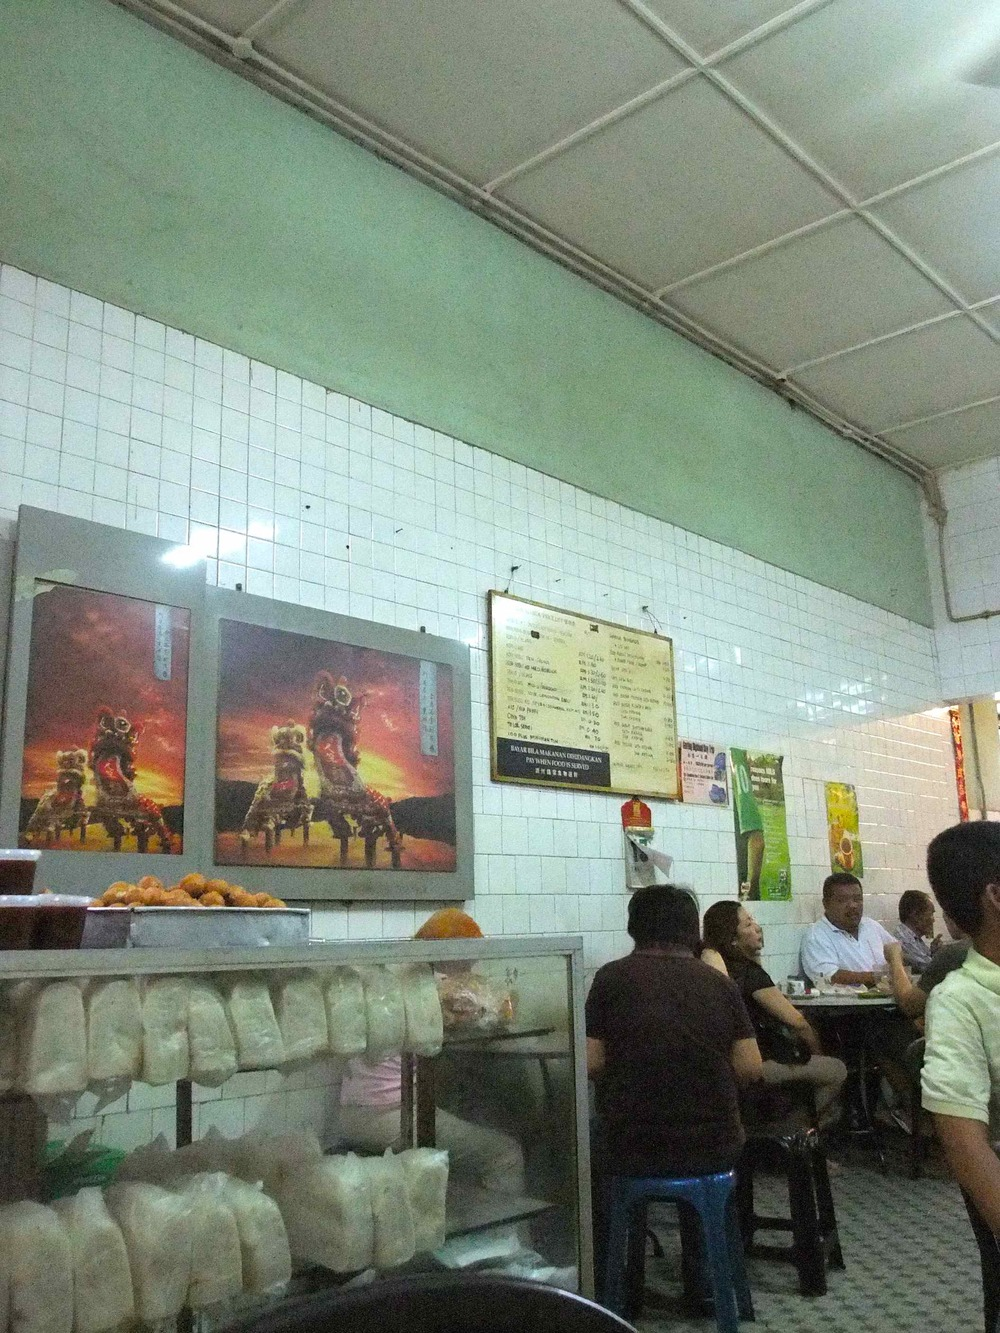 Eating Out - Part 1 (Ipoh)